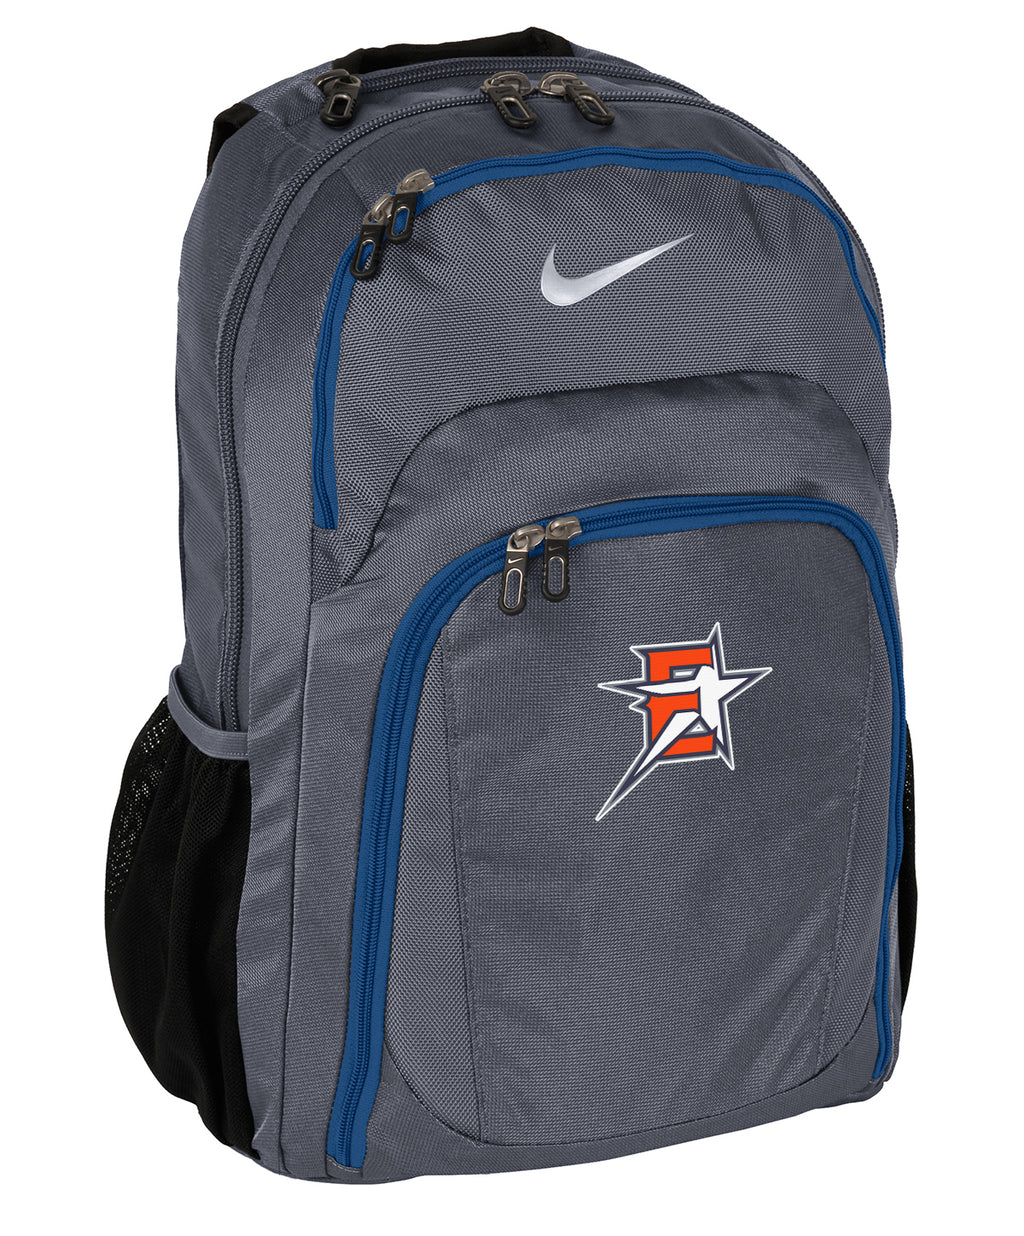 2019 Eastvale Girl's Softball Nike Backpack